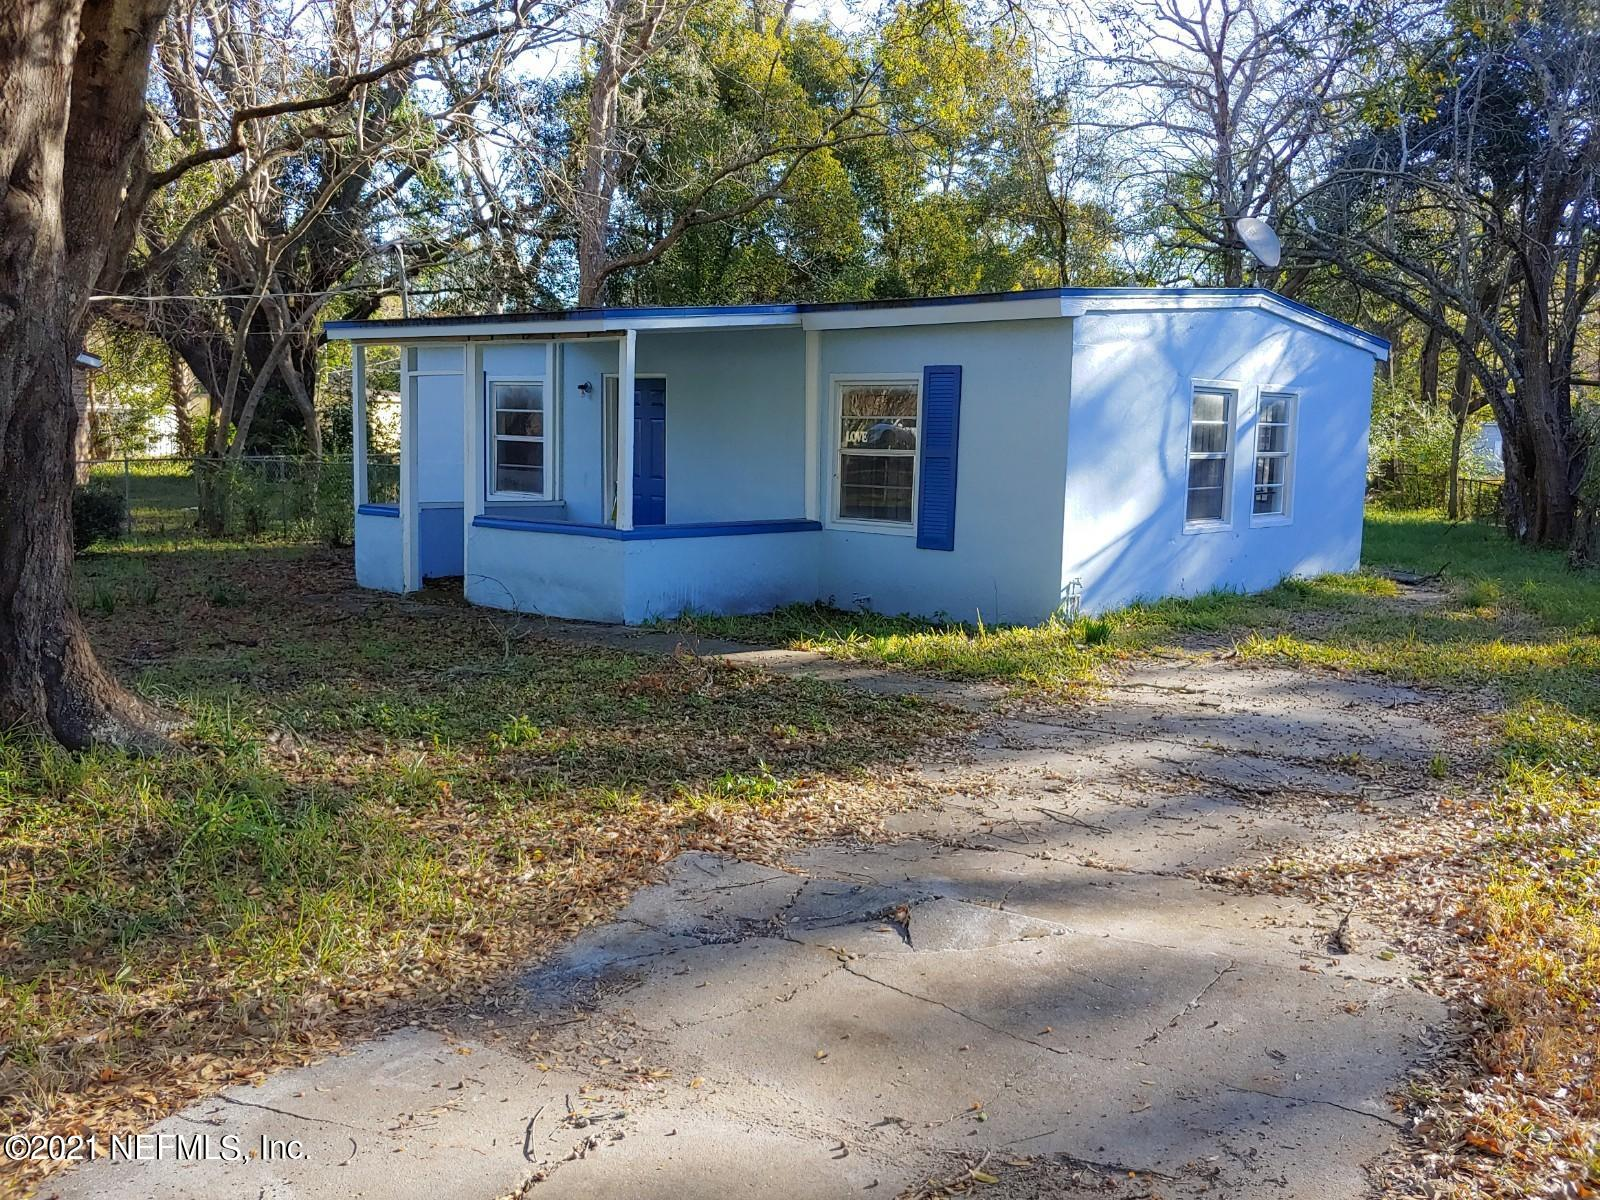 5803 HOLLYHOCK, JACKSONVILLE, FLORIDA 32209, 2 Bedrooms Bedrooms, ,1 BathroomBathrooms,Investment / MultiFamily,For sale,HOLLYHOCK,1091168